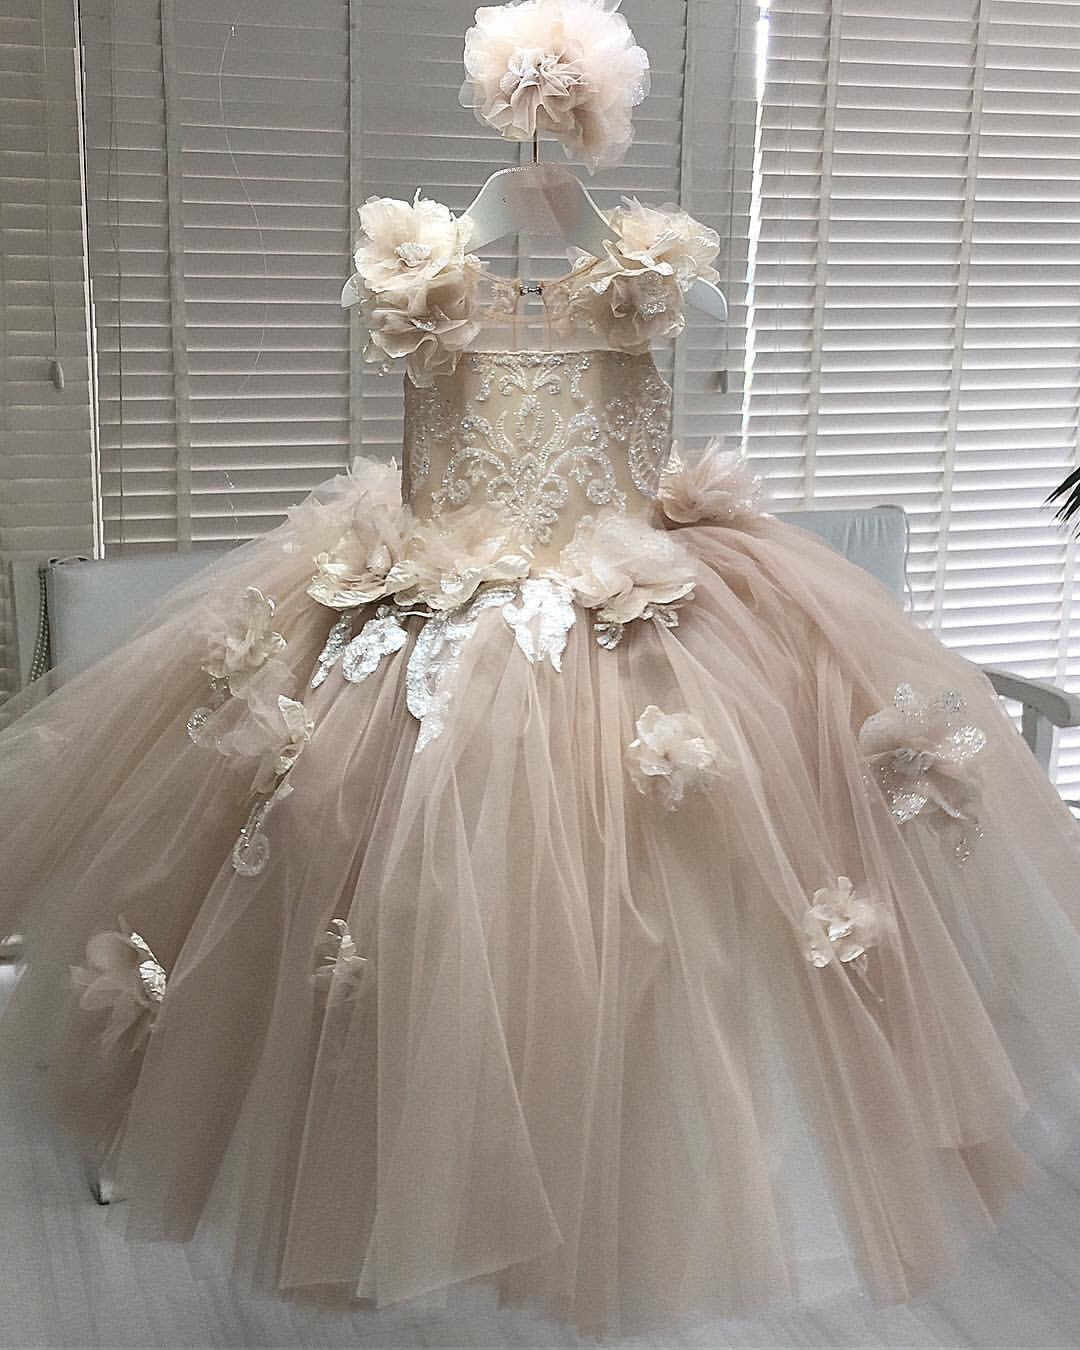 Extraordinary kids couture champagne flower dress